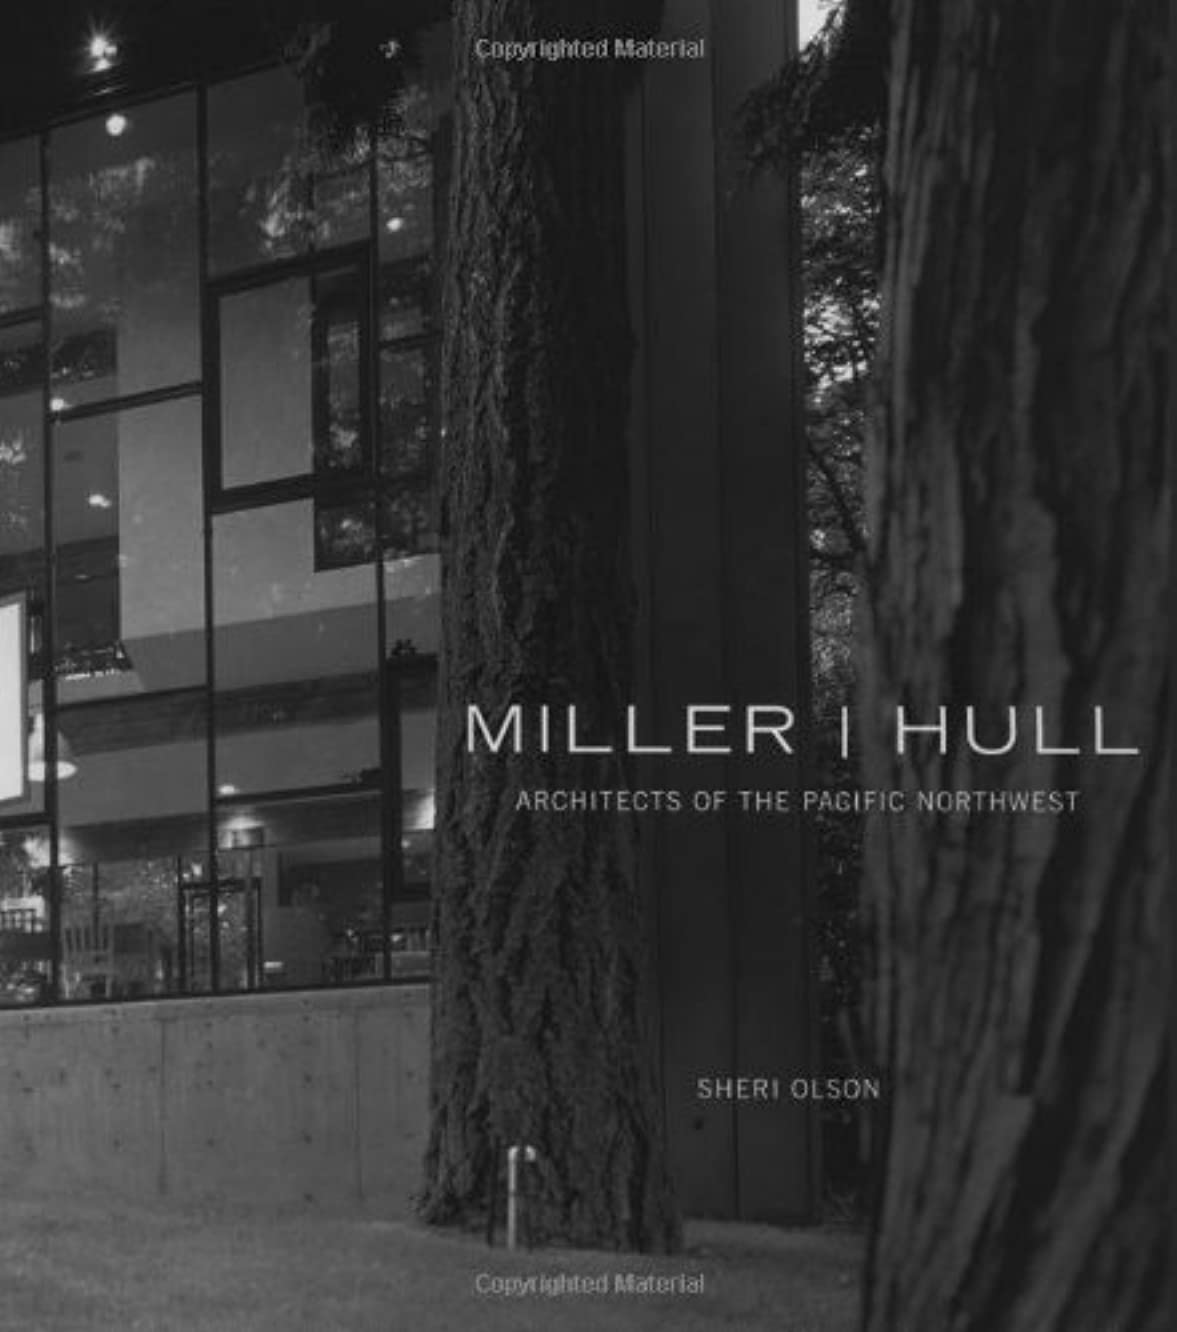 Miller I. Hull: Architects of the Pacific Northwest